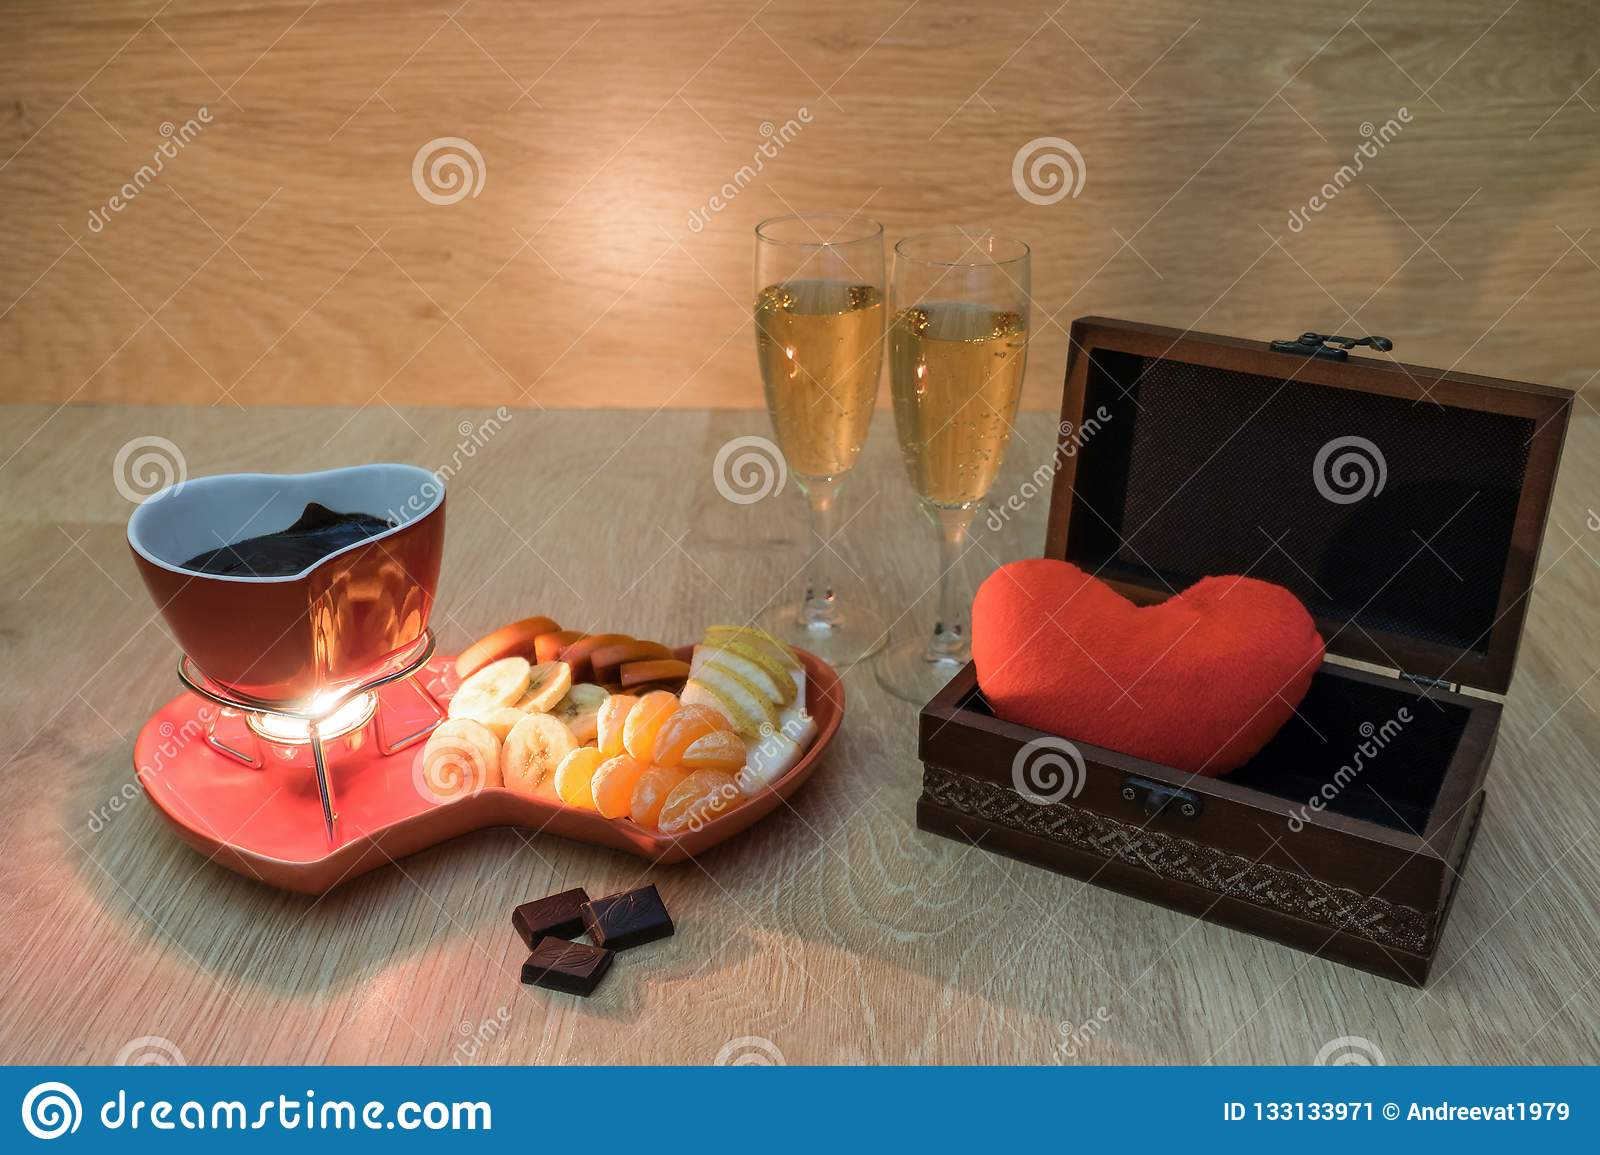 Chocolate fondue with fruit and champagne and a gift box with heart. Romantic dinner. Love, romance or Valentines day concept